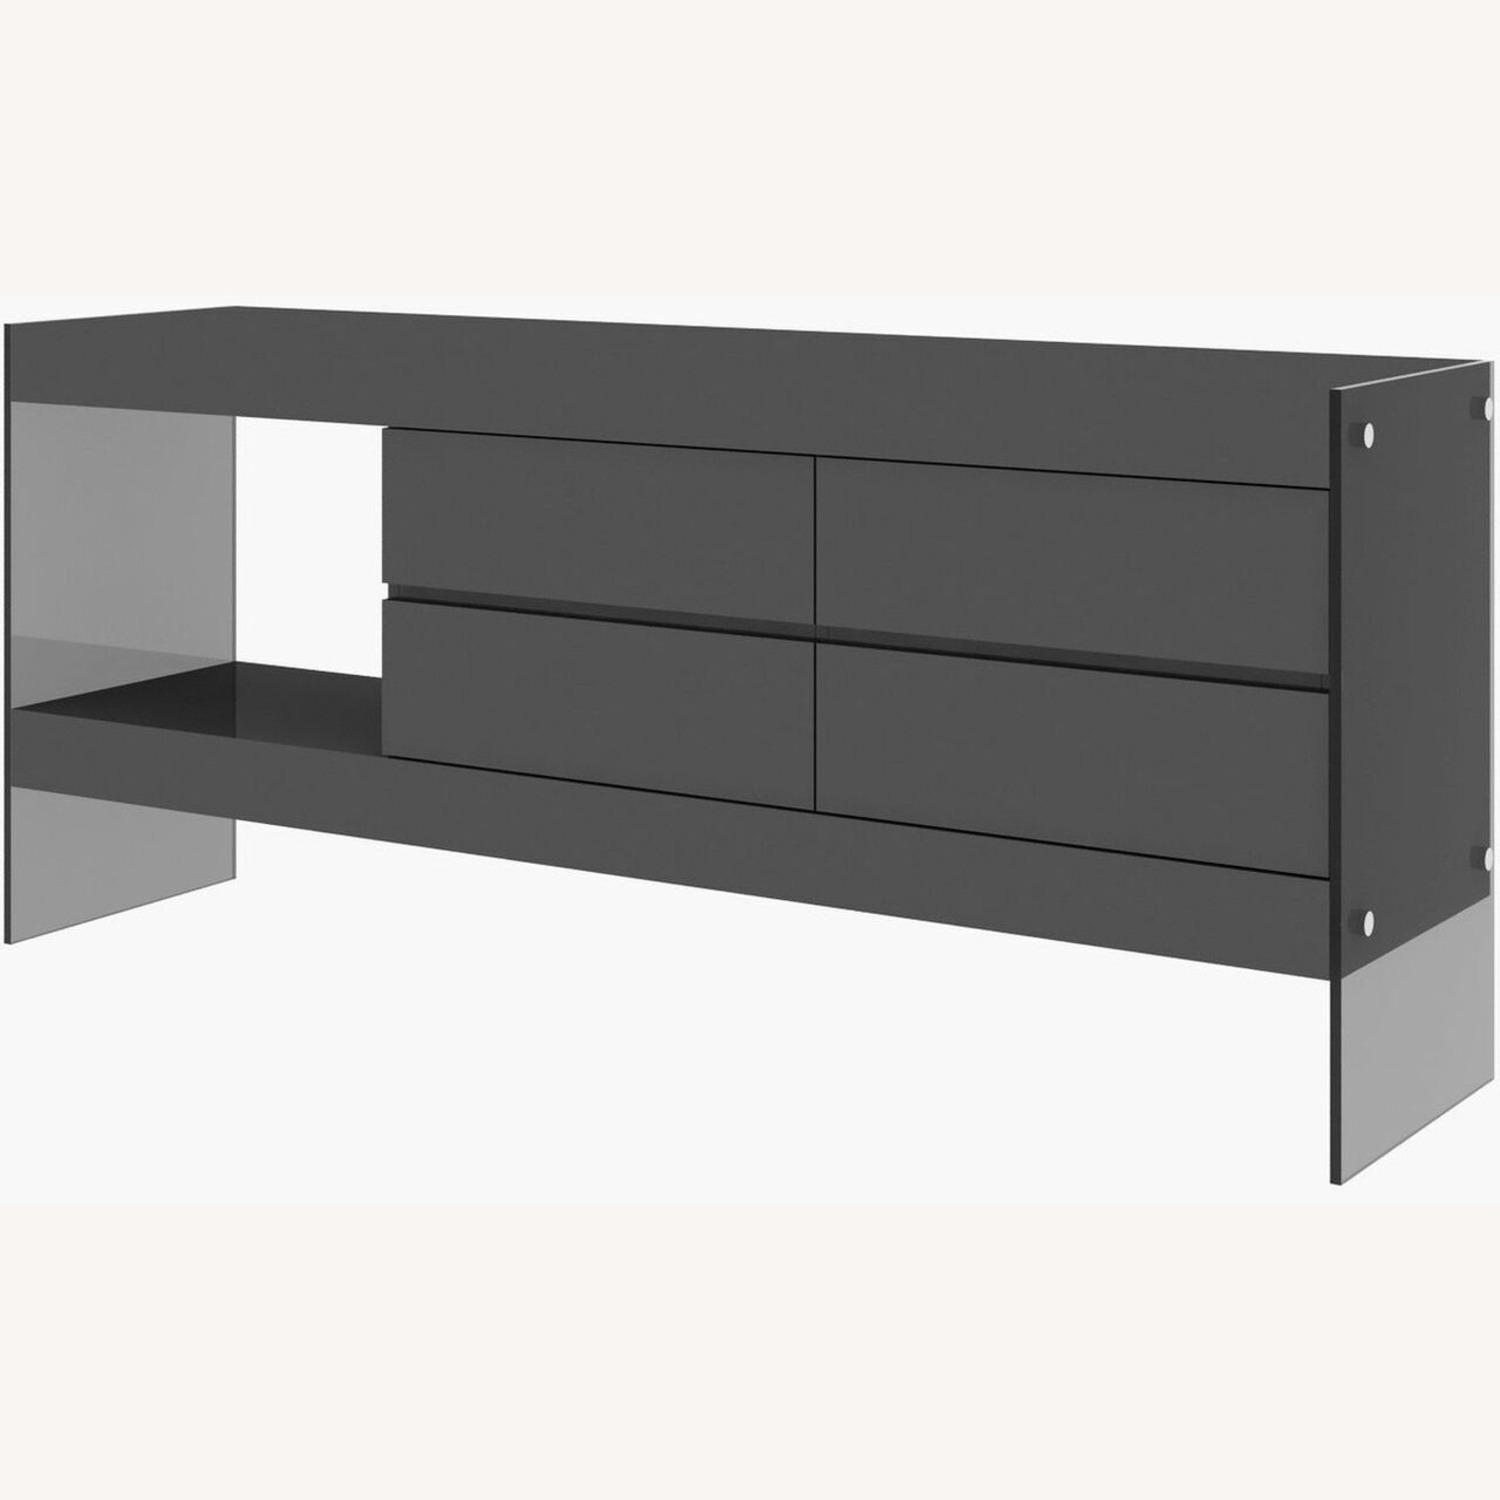 Modern Buffet In Grey Finish W/ Glass Base - image-2